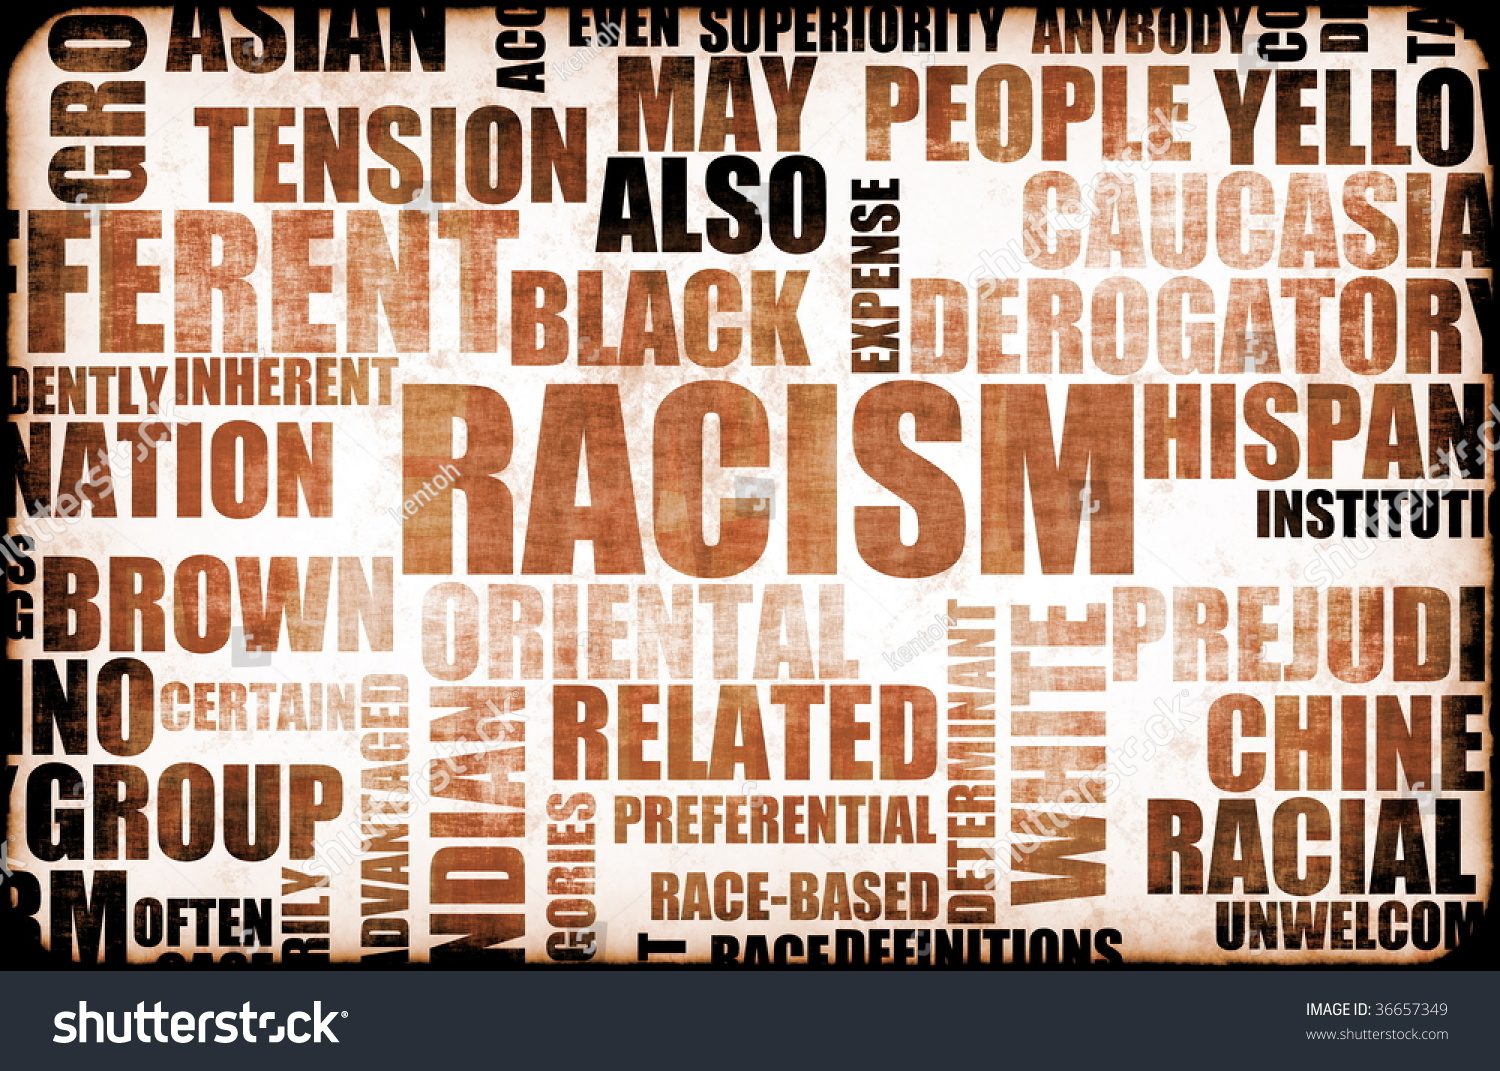 Racism And Discrimination As A Grunge Background Stock Photo 36657349 : Shutterstock